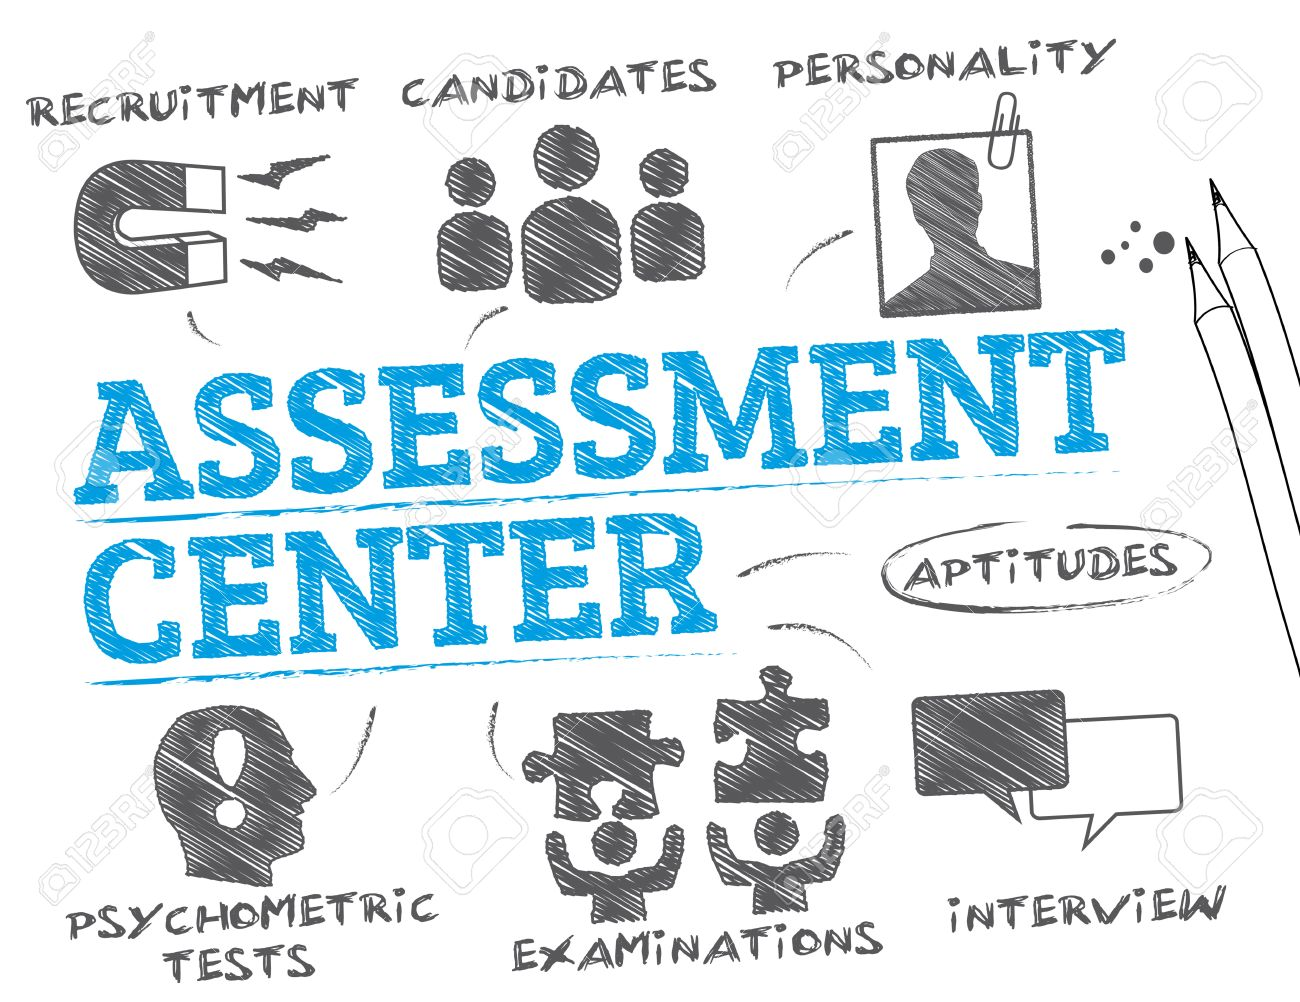 L'Assessment Center